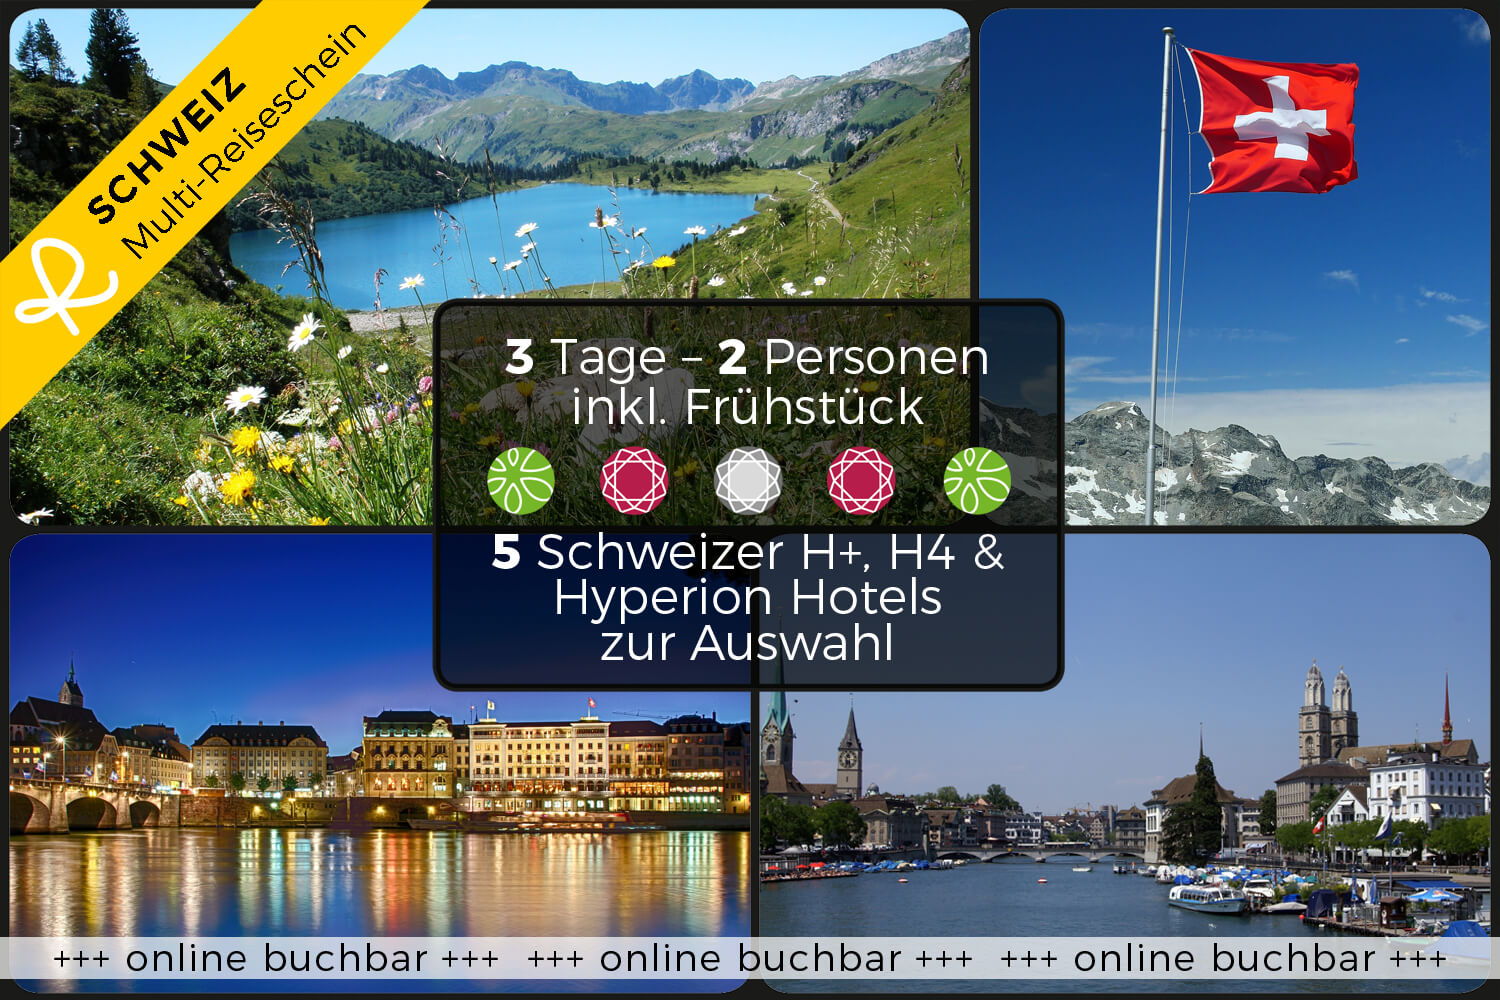 3 days holiday in a Swiss Hotel of your choice for experience & enjoy